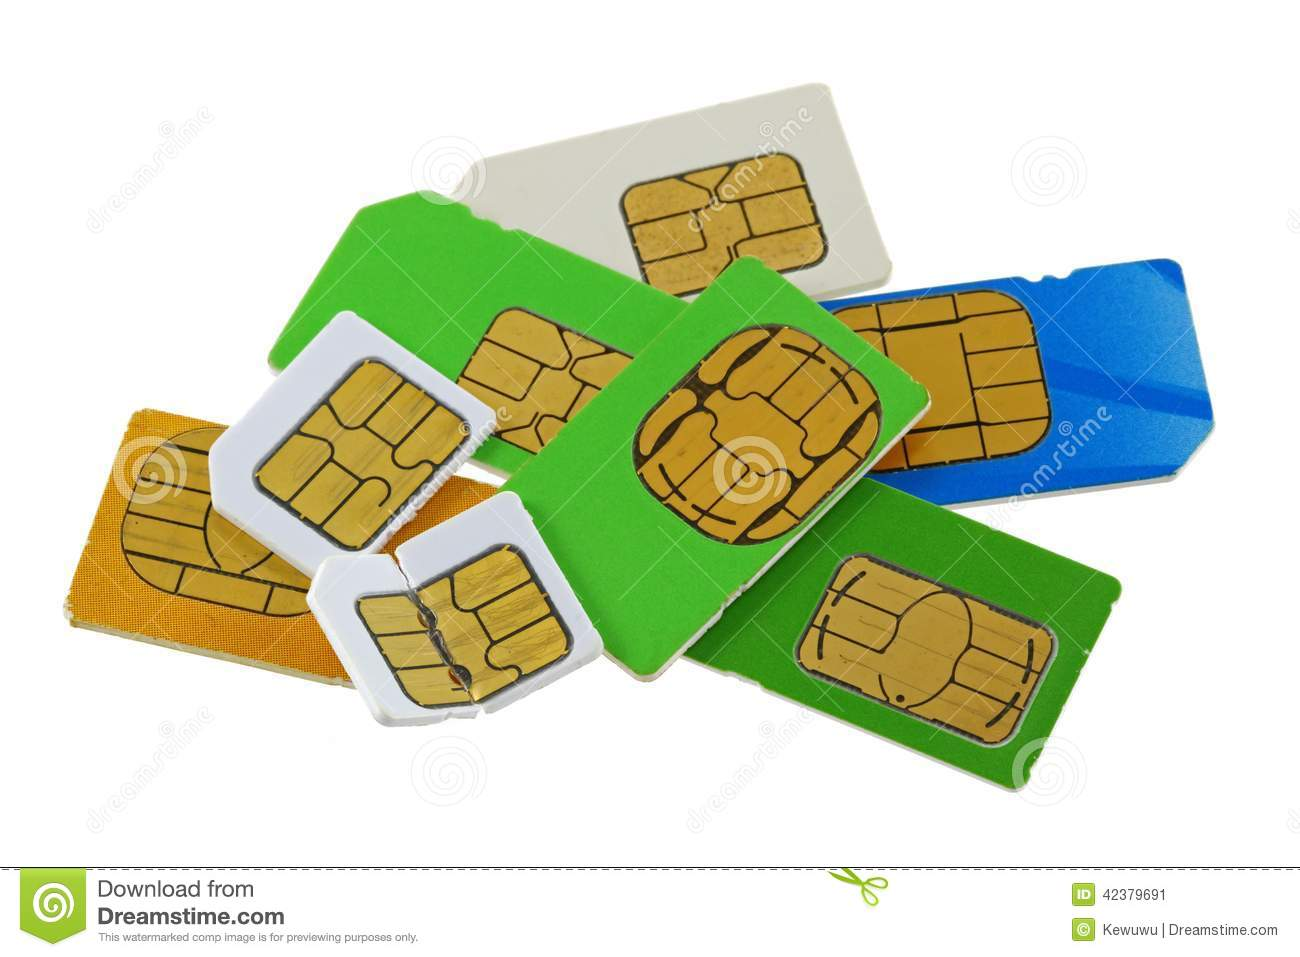 how to download photos from sim card